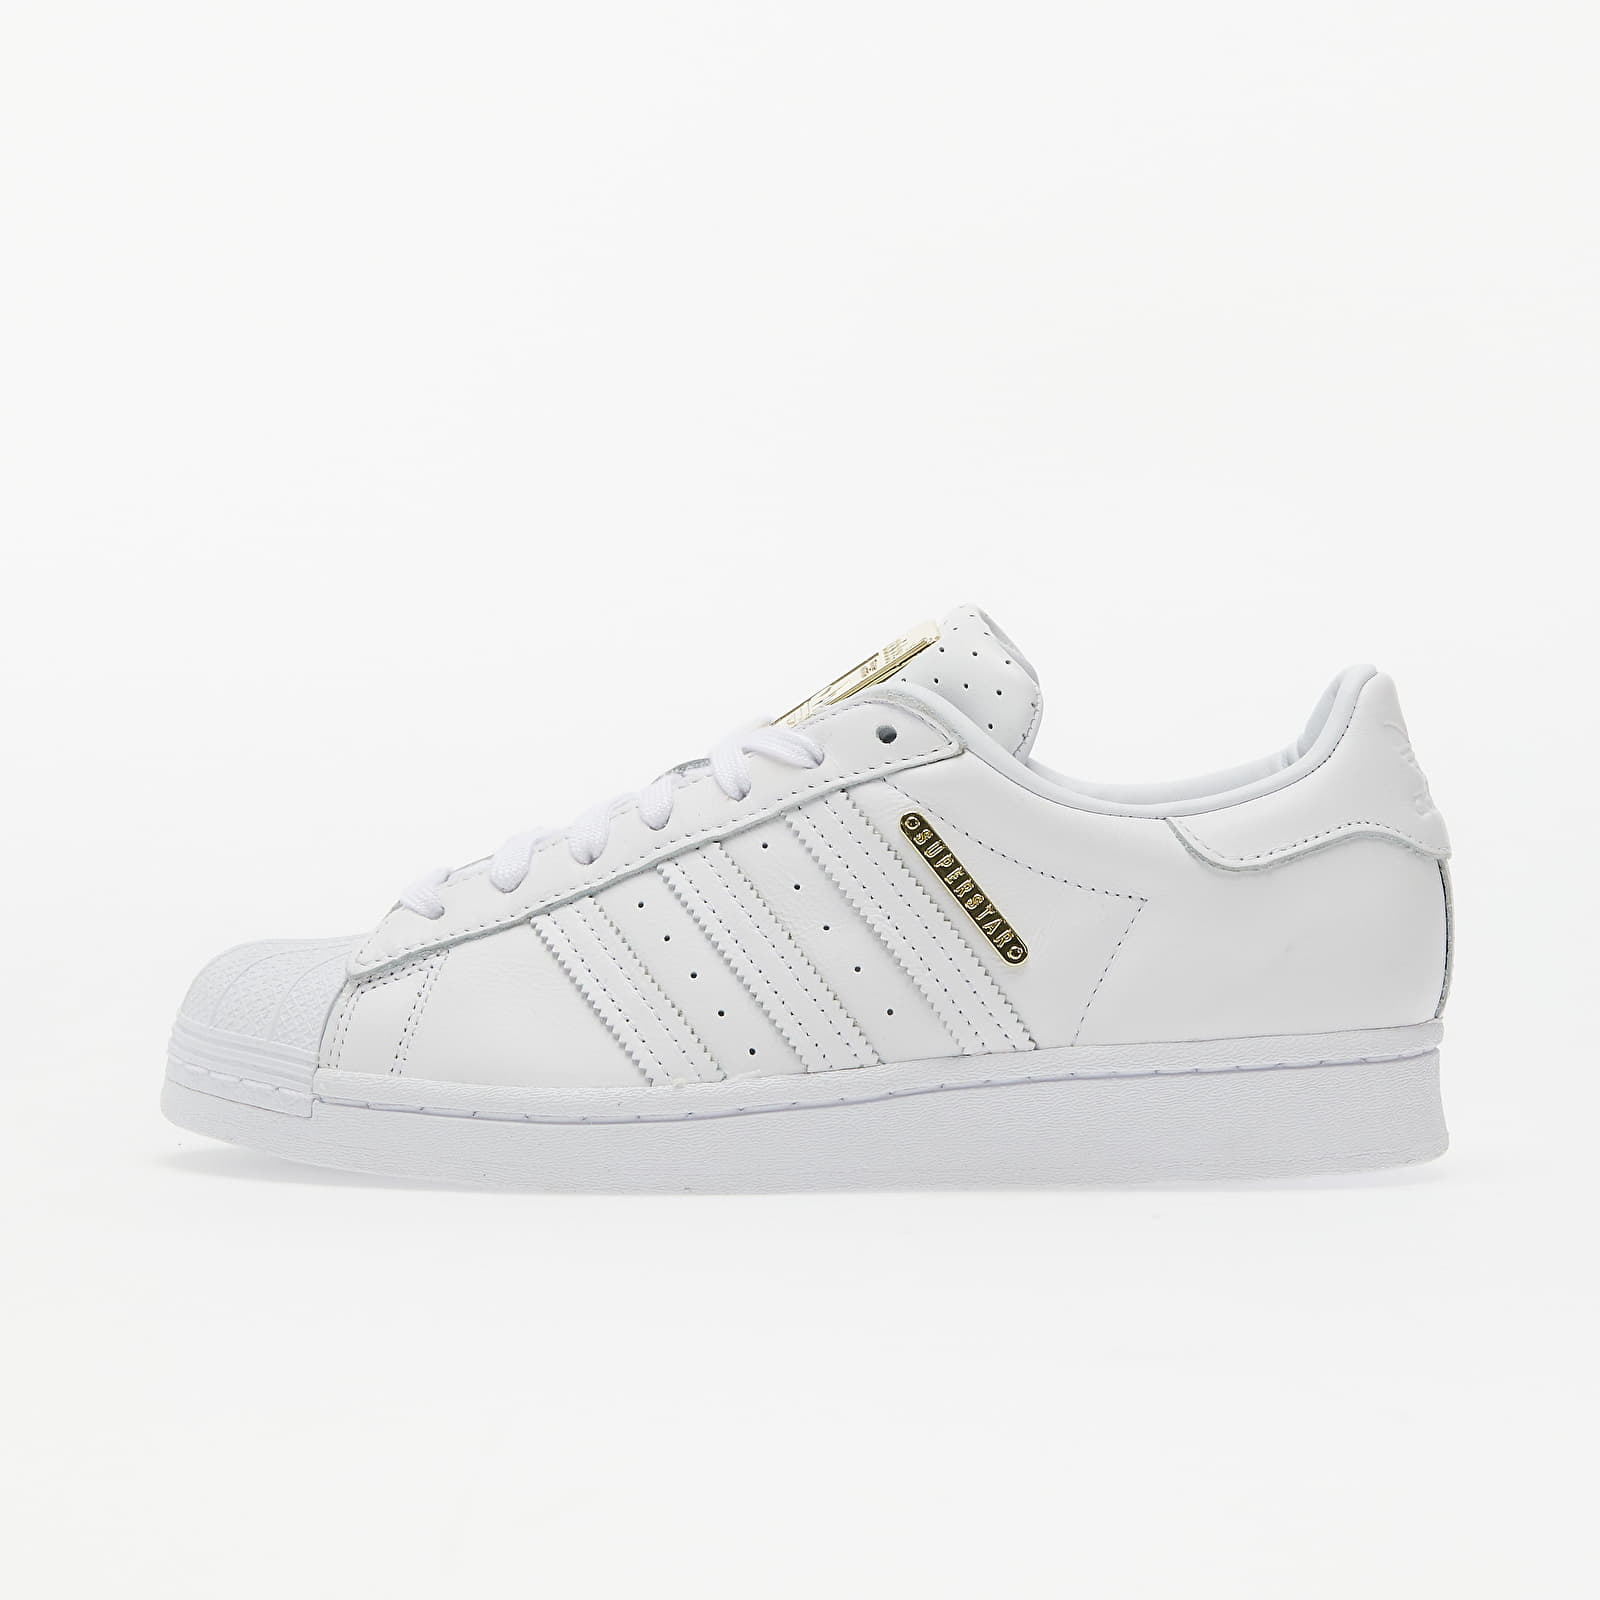 Women's shoes adidas Superstar W Ftw White/ Ftw White/ Gold Metalic